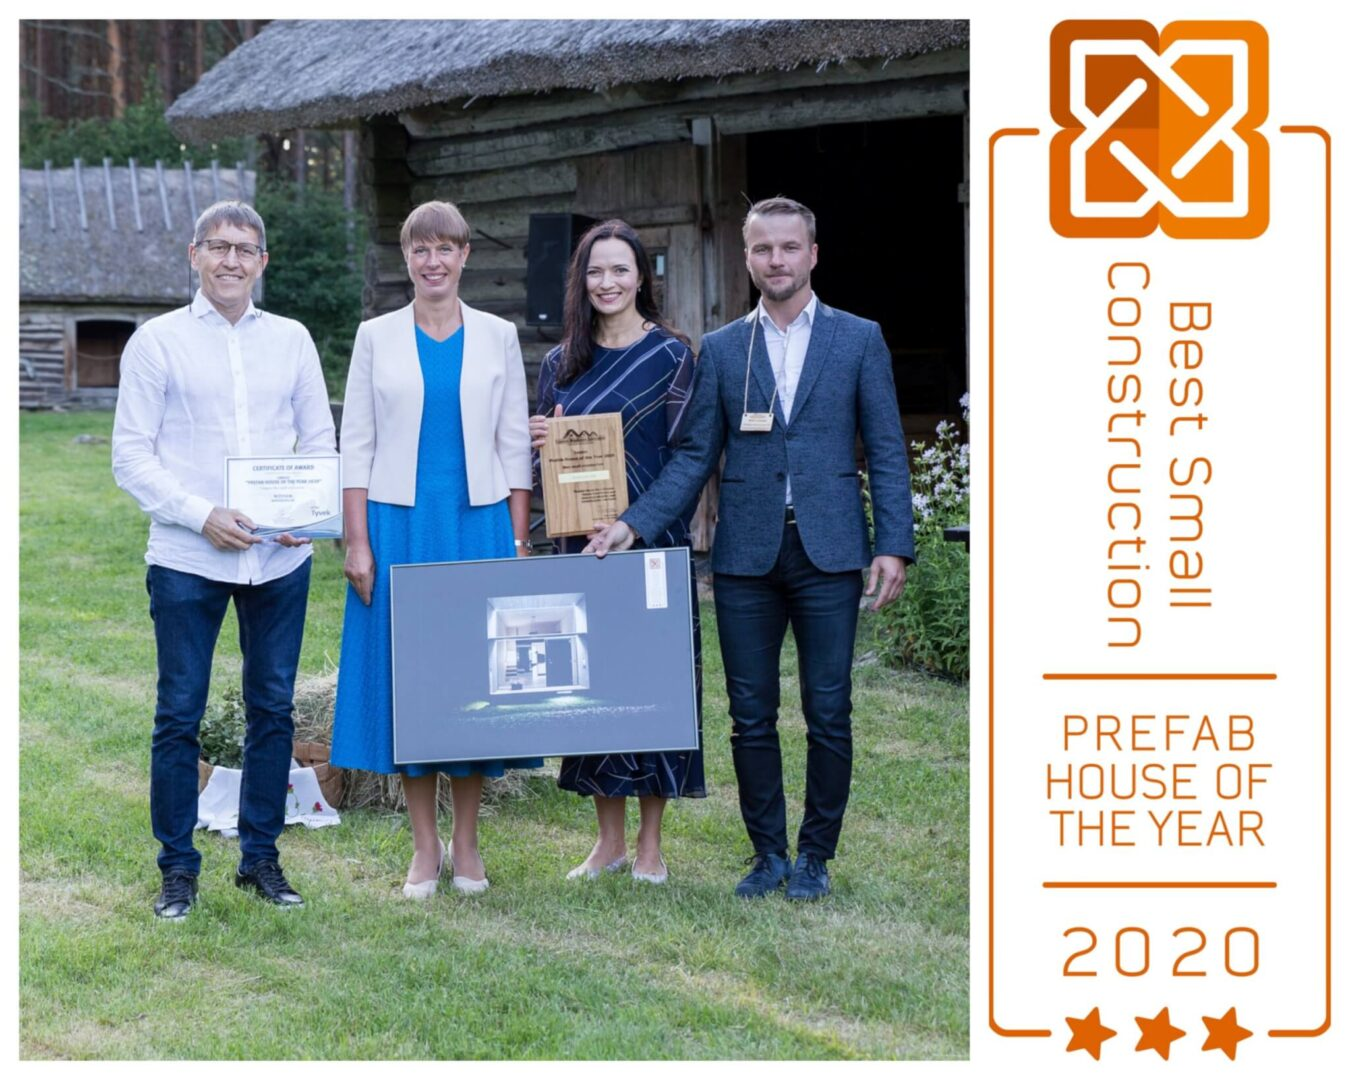 Prefab House of the Year - KODA Award 2020